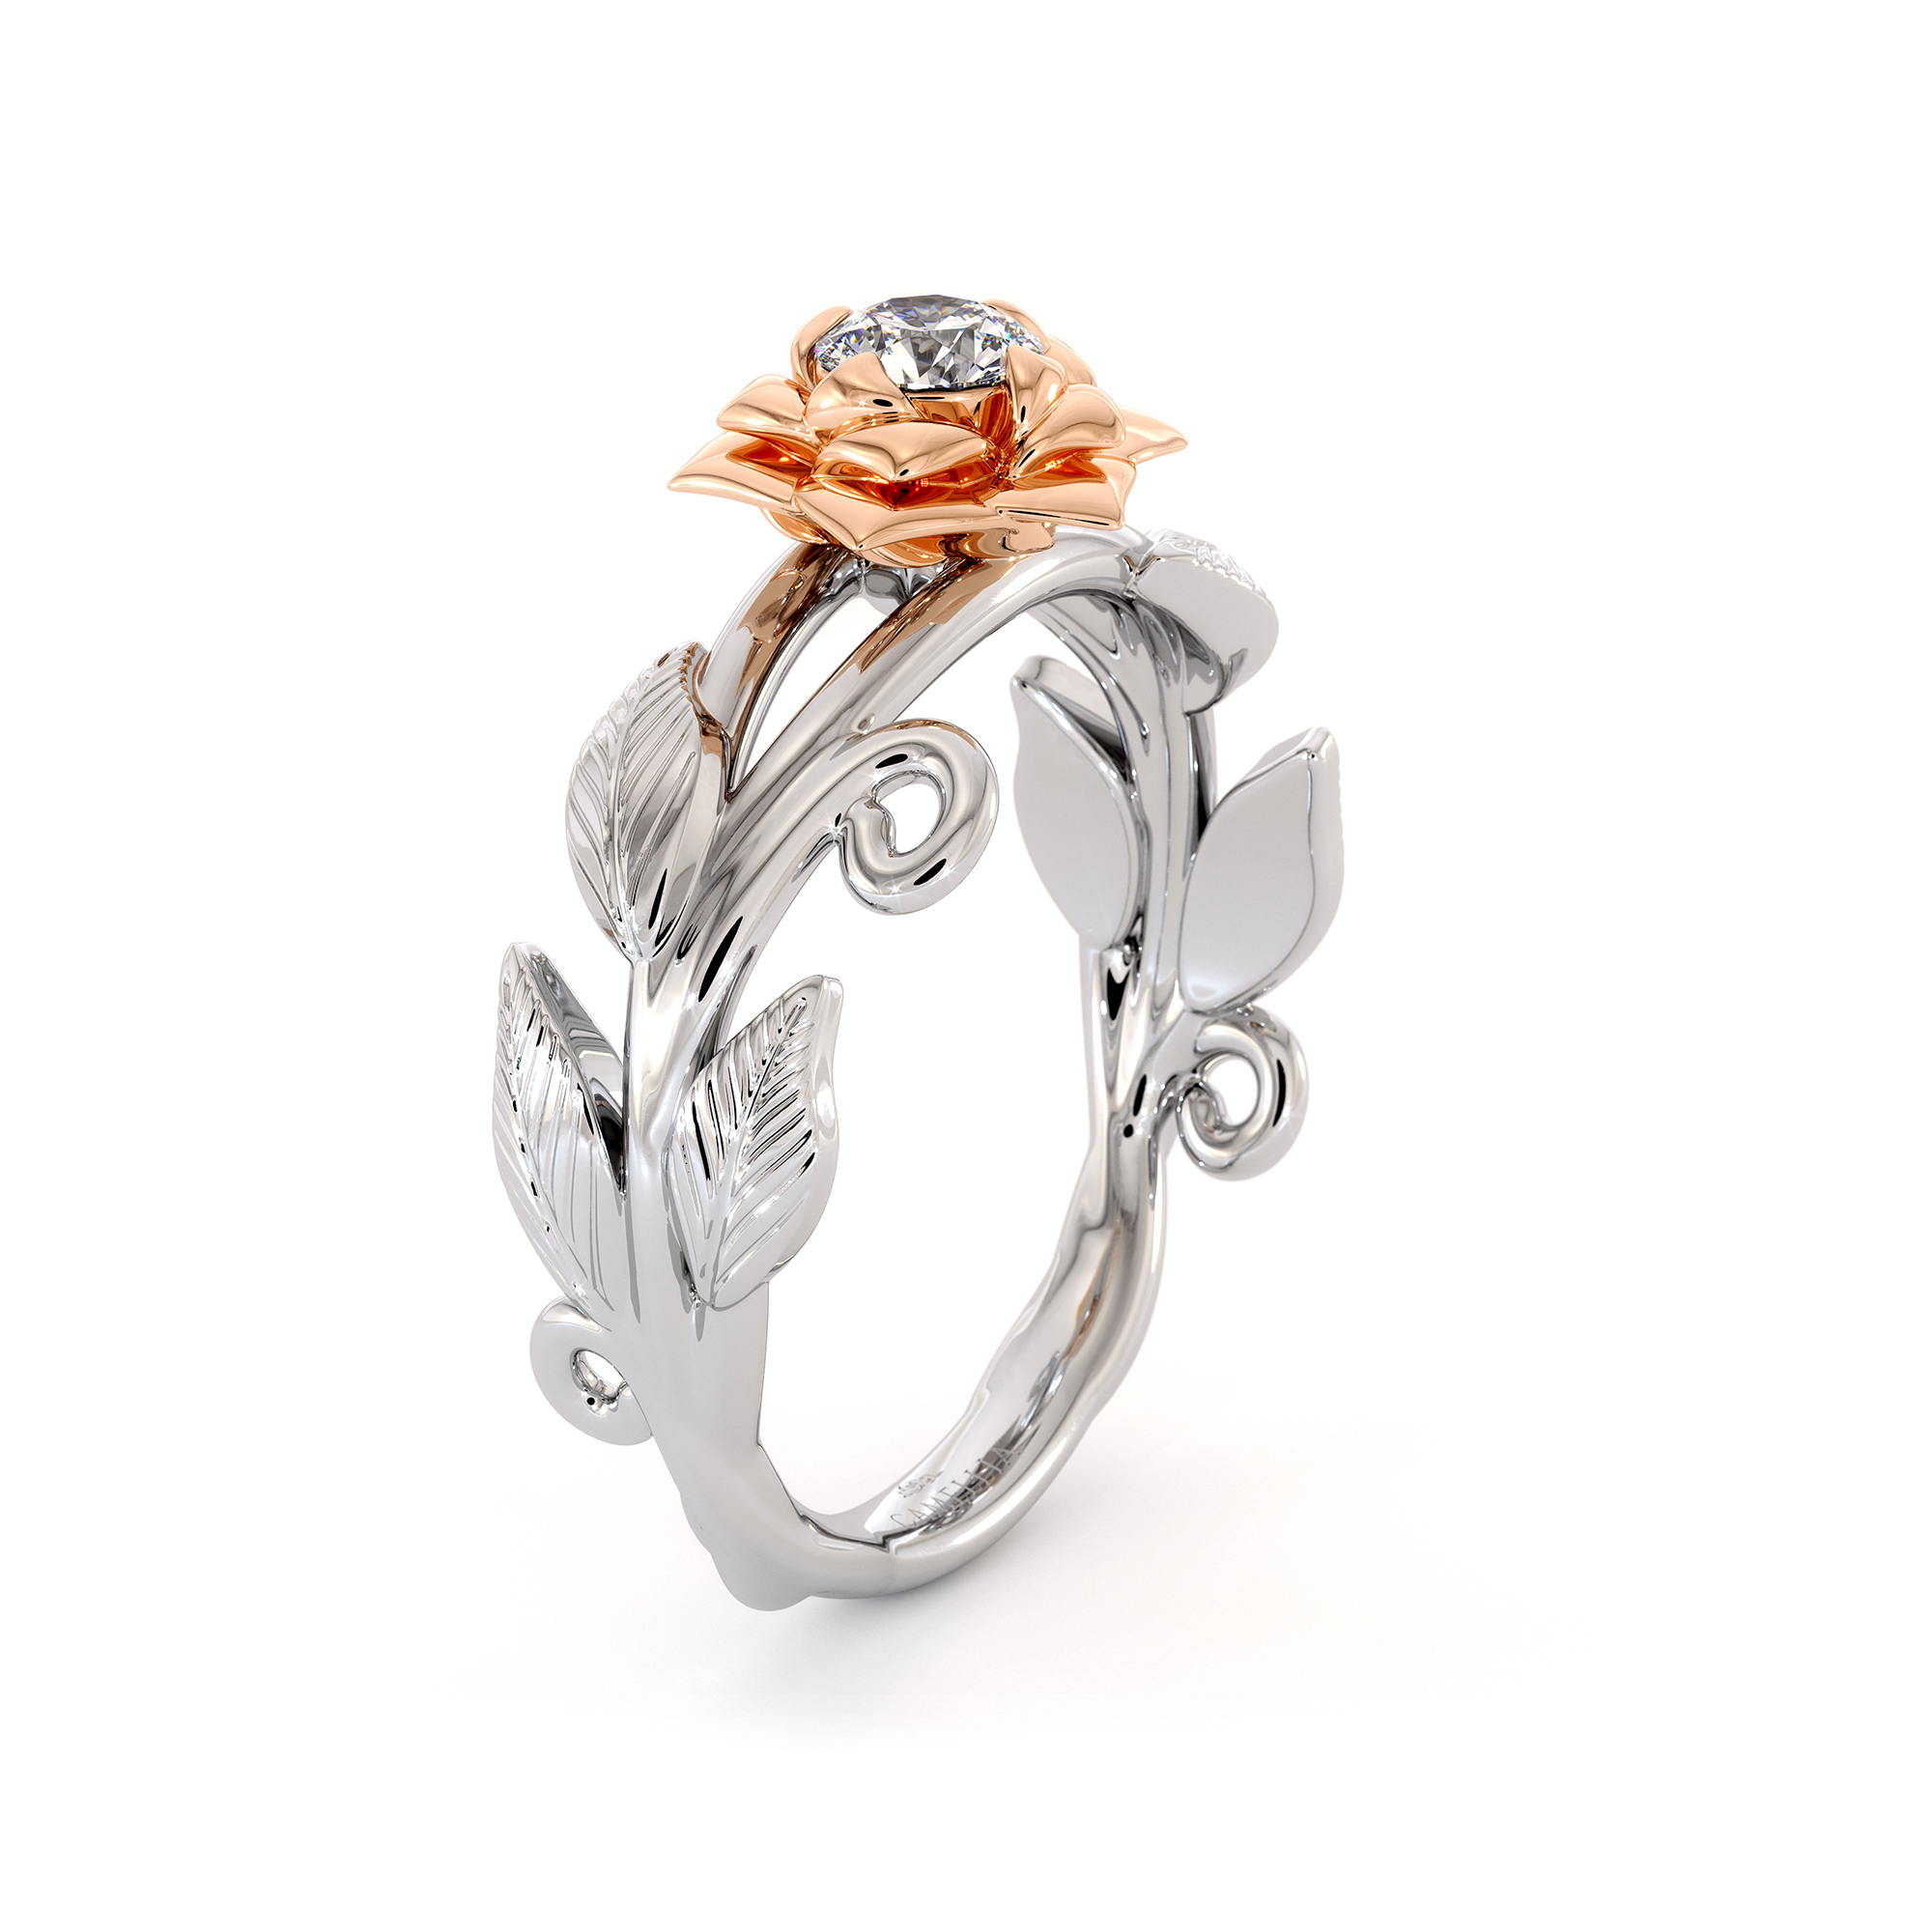 Diamond Engagement Ring Flower Ring Camellia Ring 2 Tone Gold Ring Solitaire Diamond Ring Leaf Engagement Ring